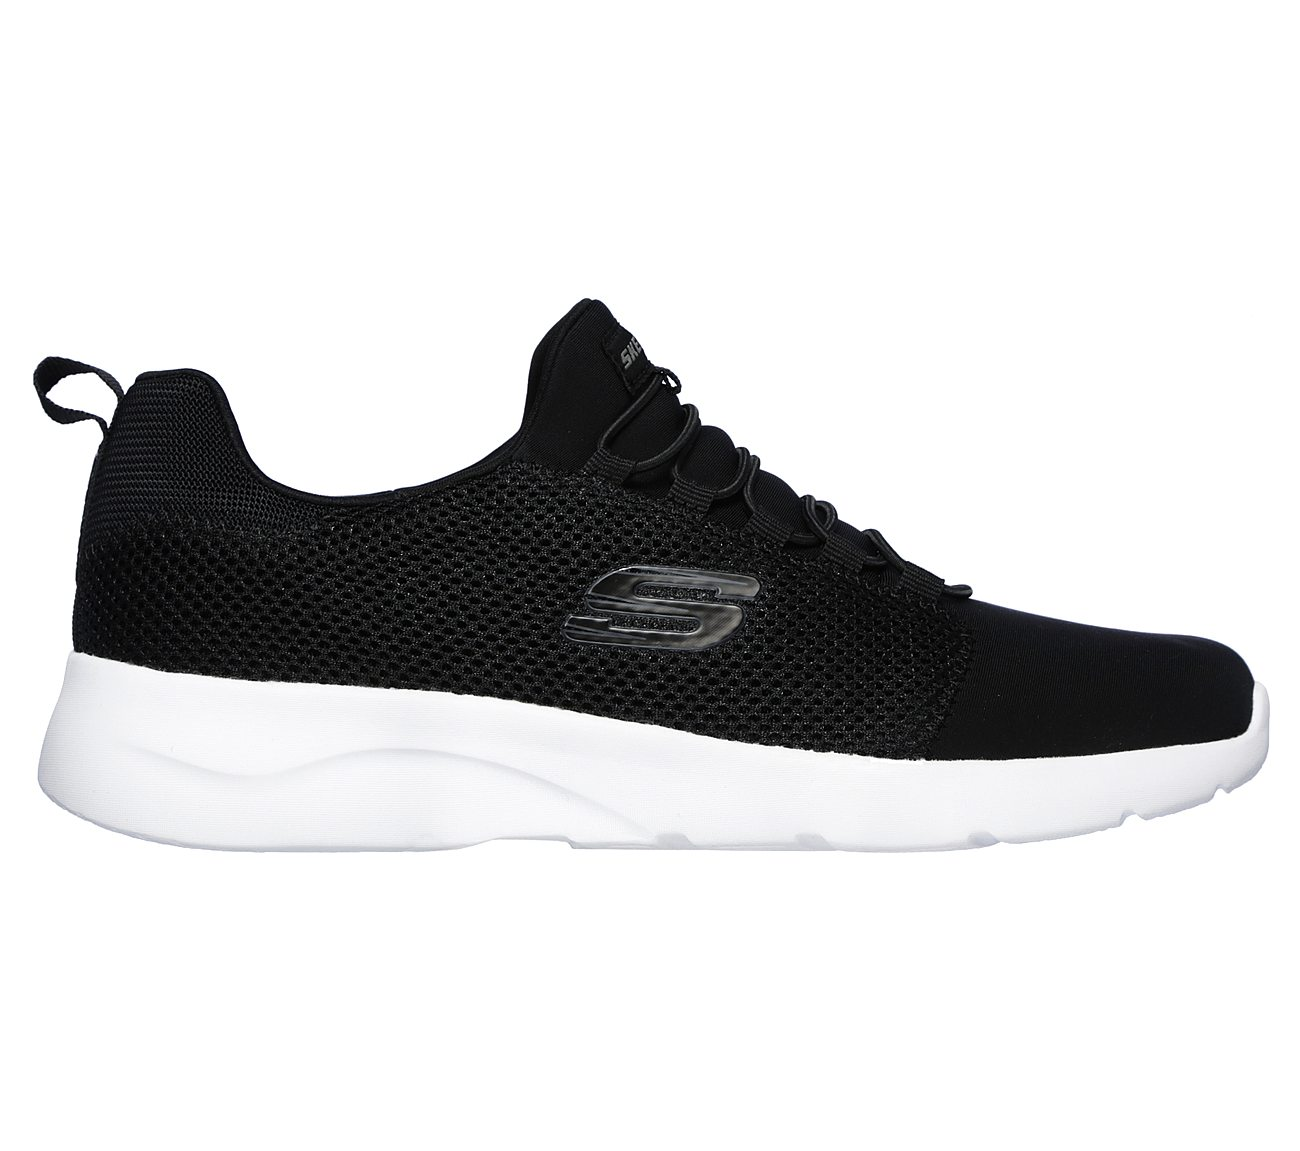 Buy SKECHERS Dynamight 2.0 - Bywood